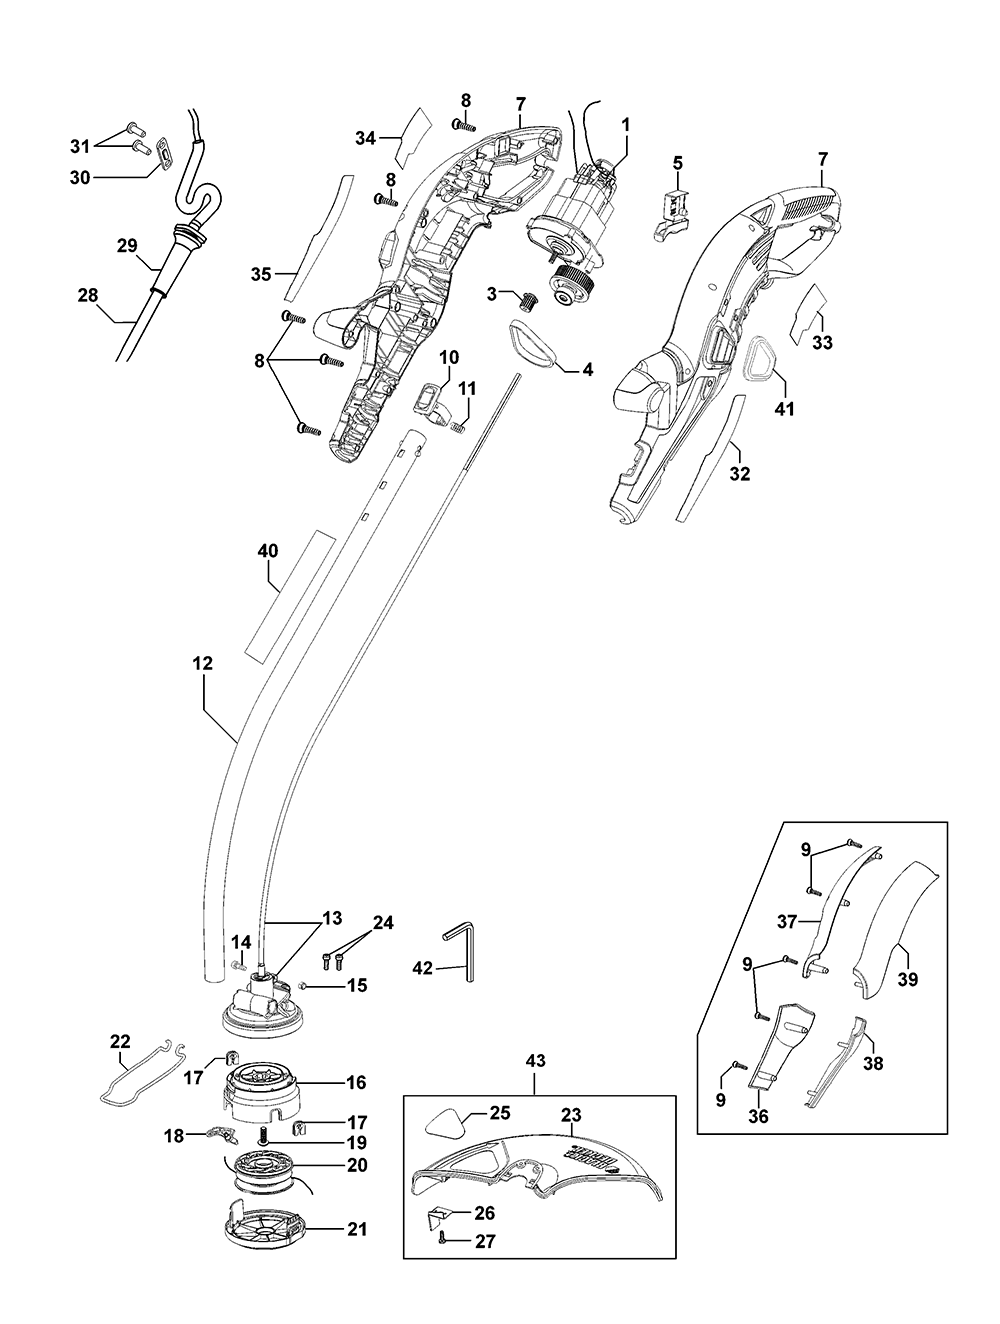 Black And Decker Gh1000 Parts List And Diagram Type 1